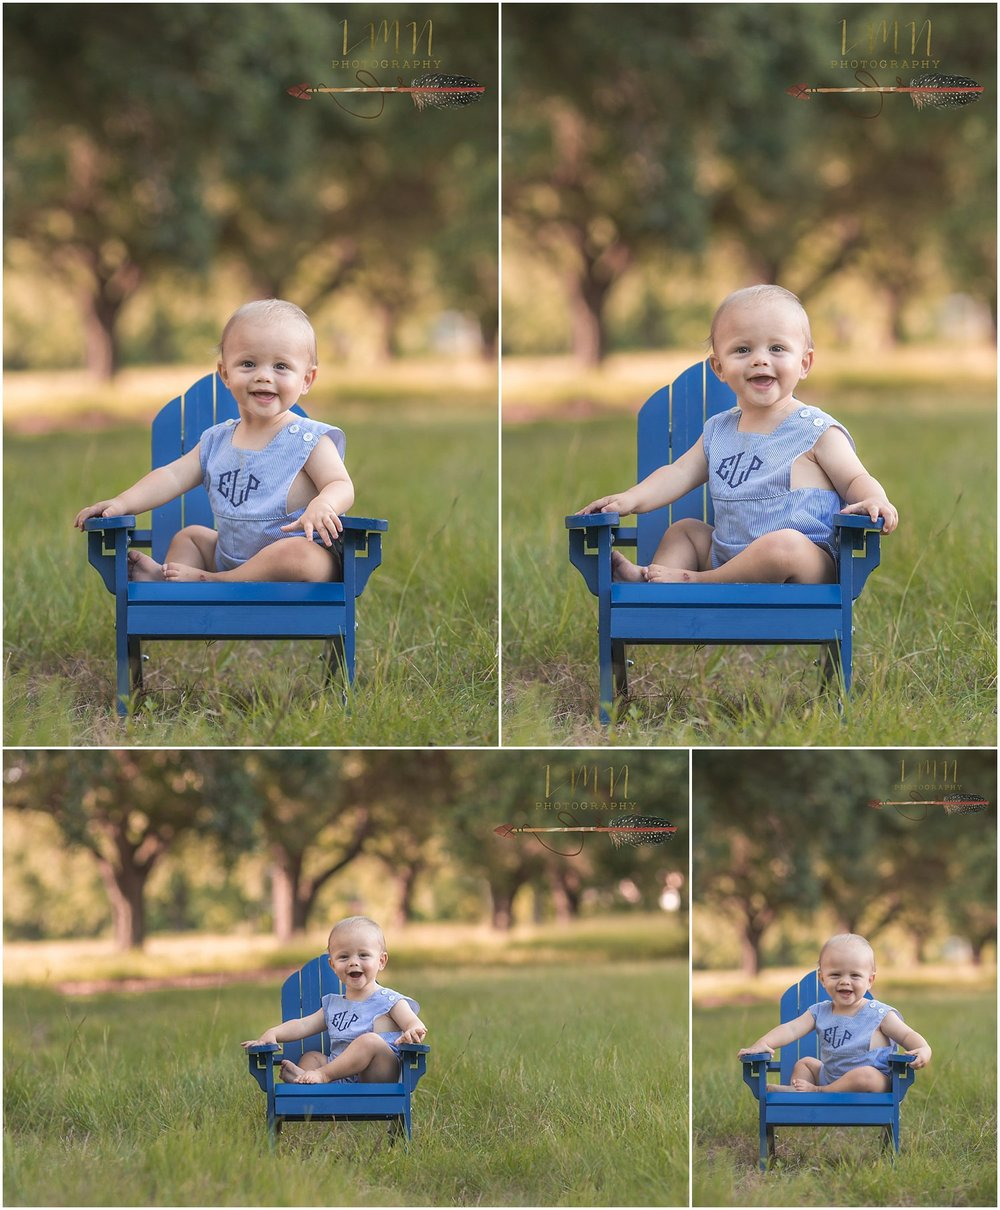 Cypress TX Child Photography 77433 77429